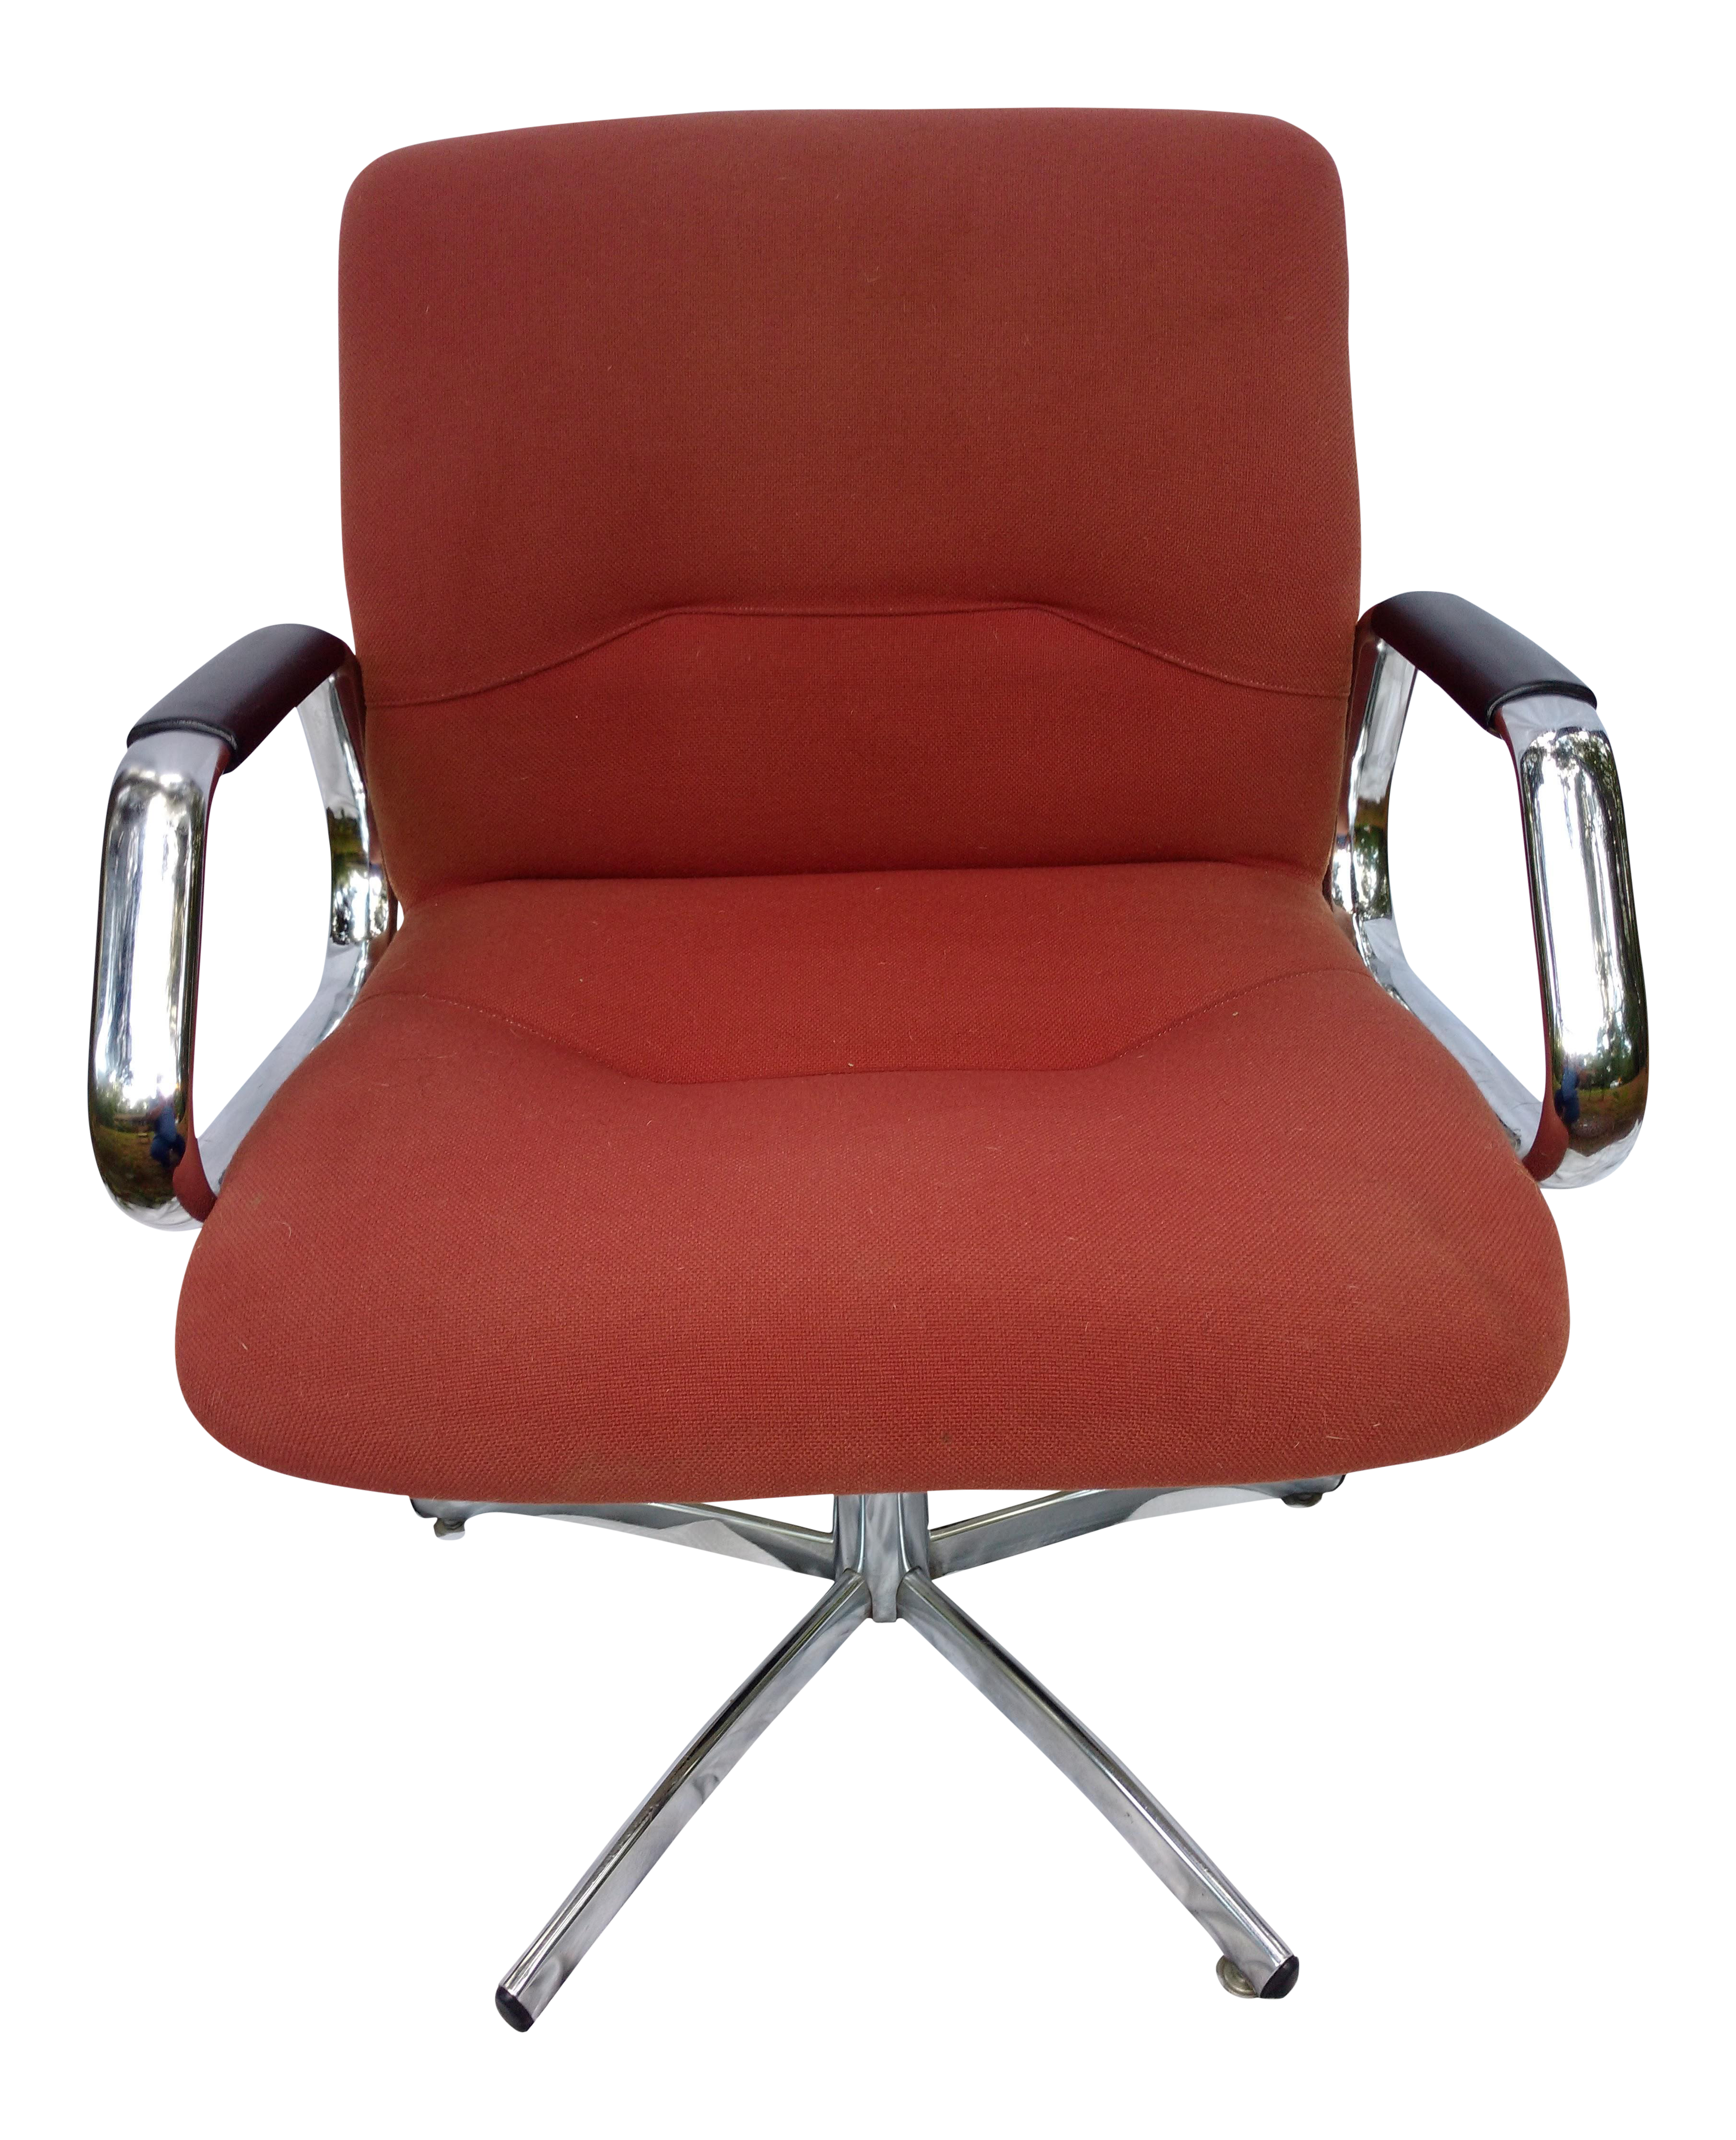 Vintage Steelcase Office Chair